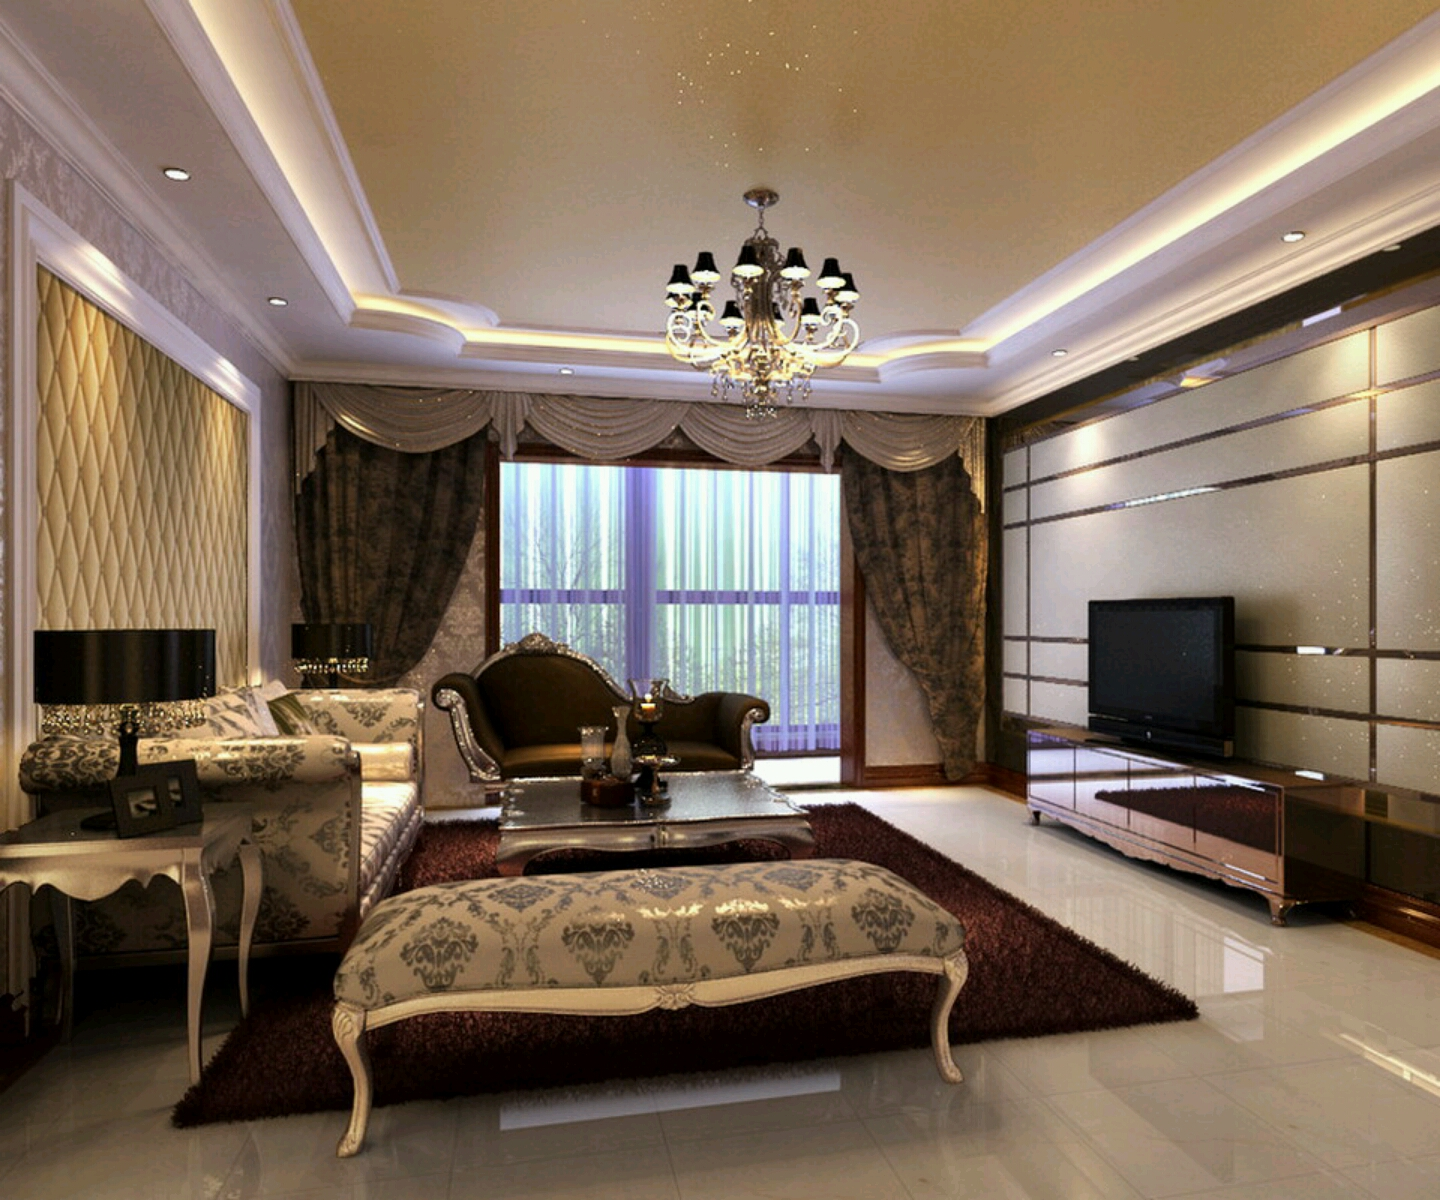 New home designs latest luxury homes interior decoration living room designs ideas Home decor for living rooms